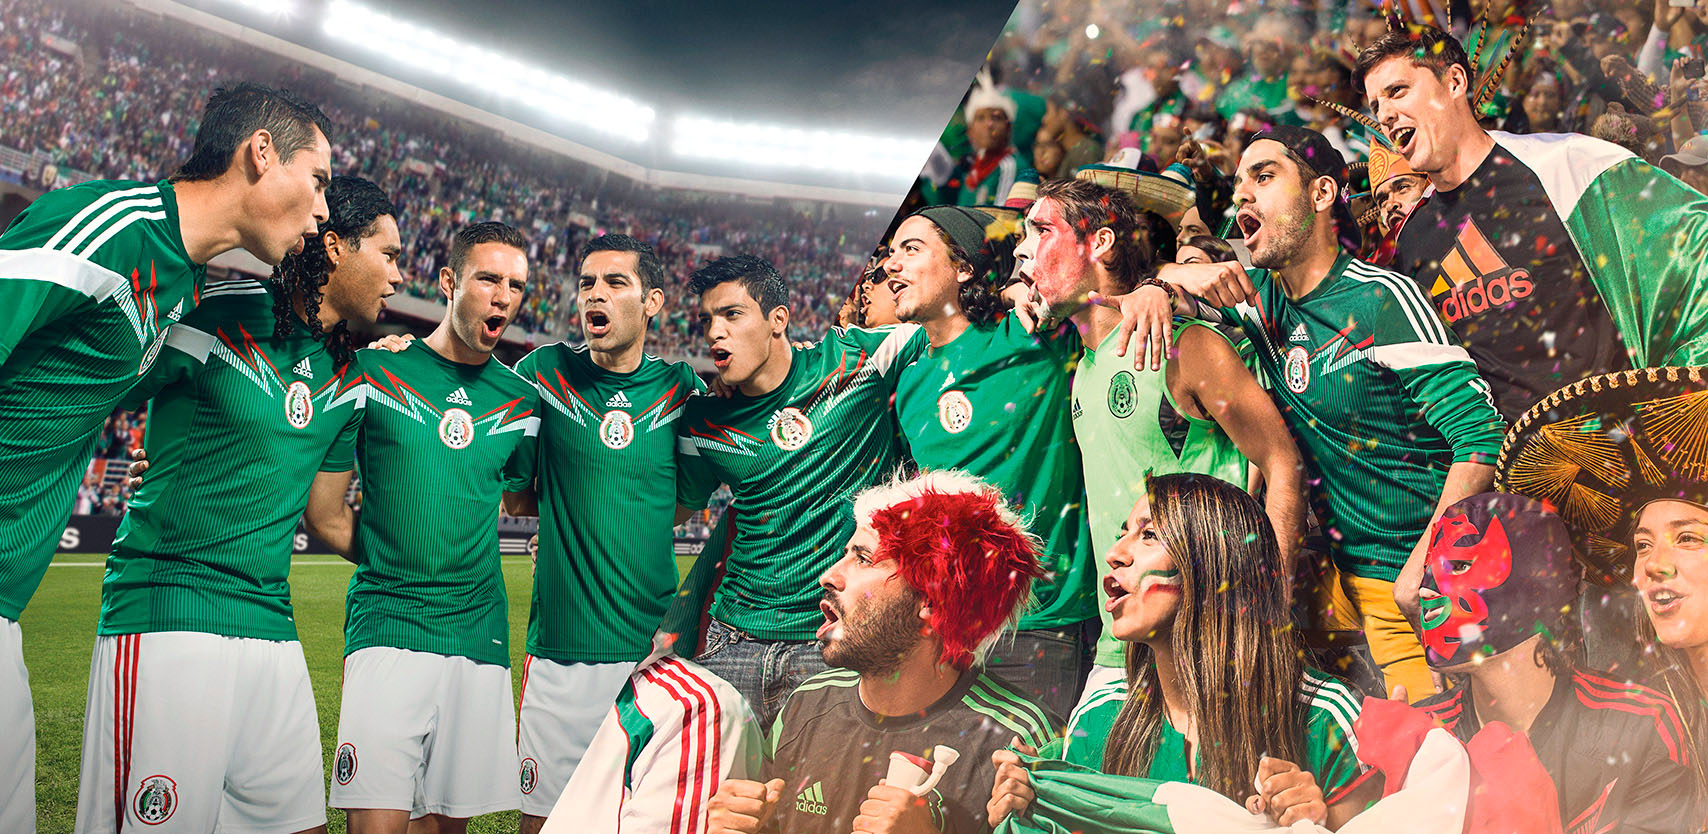 pictures mexico soccer team mexico soccer team wallpaper Car Pictures 1708x834